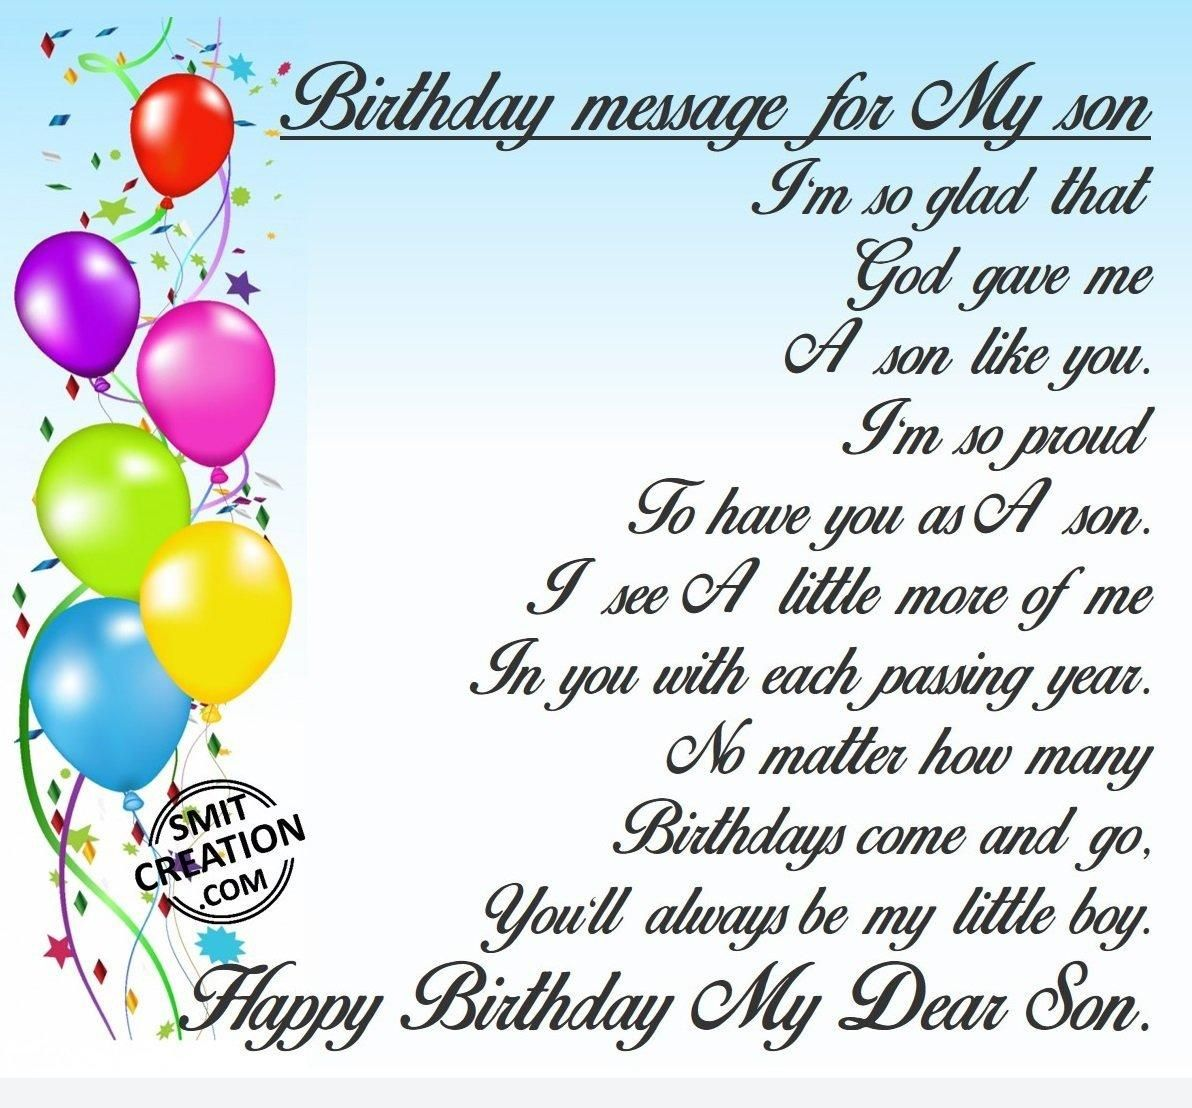 Birthday greetings for son images gallery greeting card examples birthday wishes for facebook for son birthday message for my son birthday wishes for facebook for kristyandbryce Choice Image